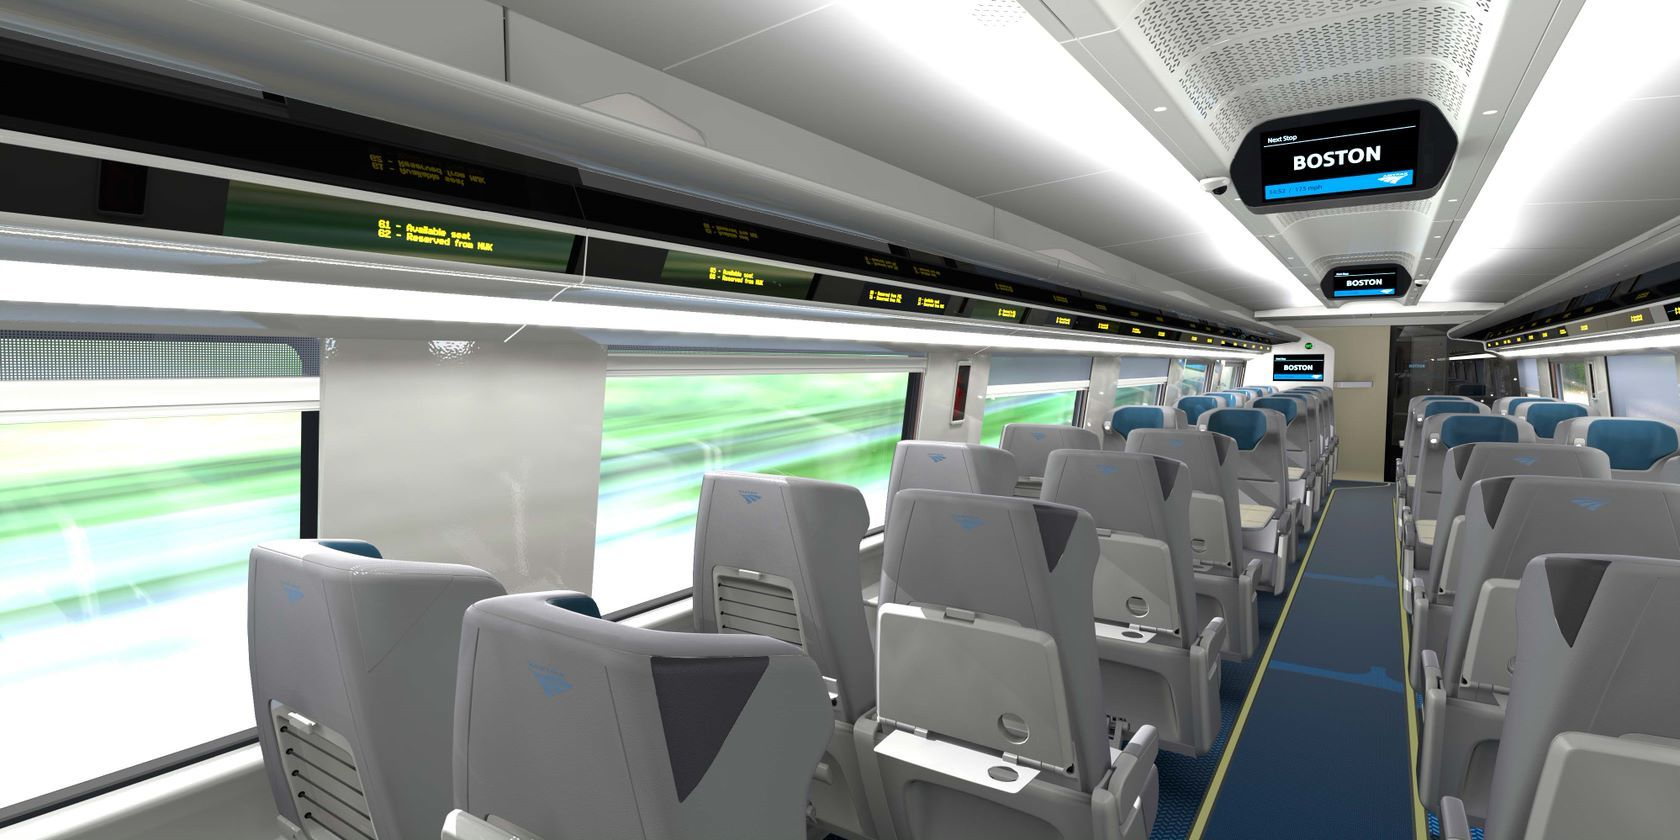 Amtrak says each seat in the new Acela trainsets will be equipped with dual tray tables providing customers with a large and small table option. (Courtesy Amtrak)